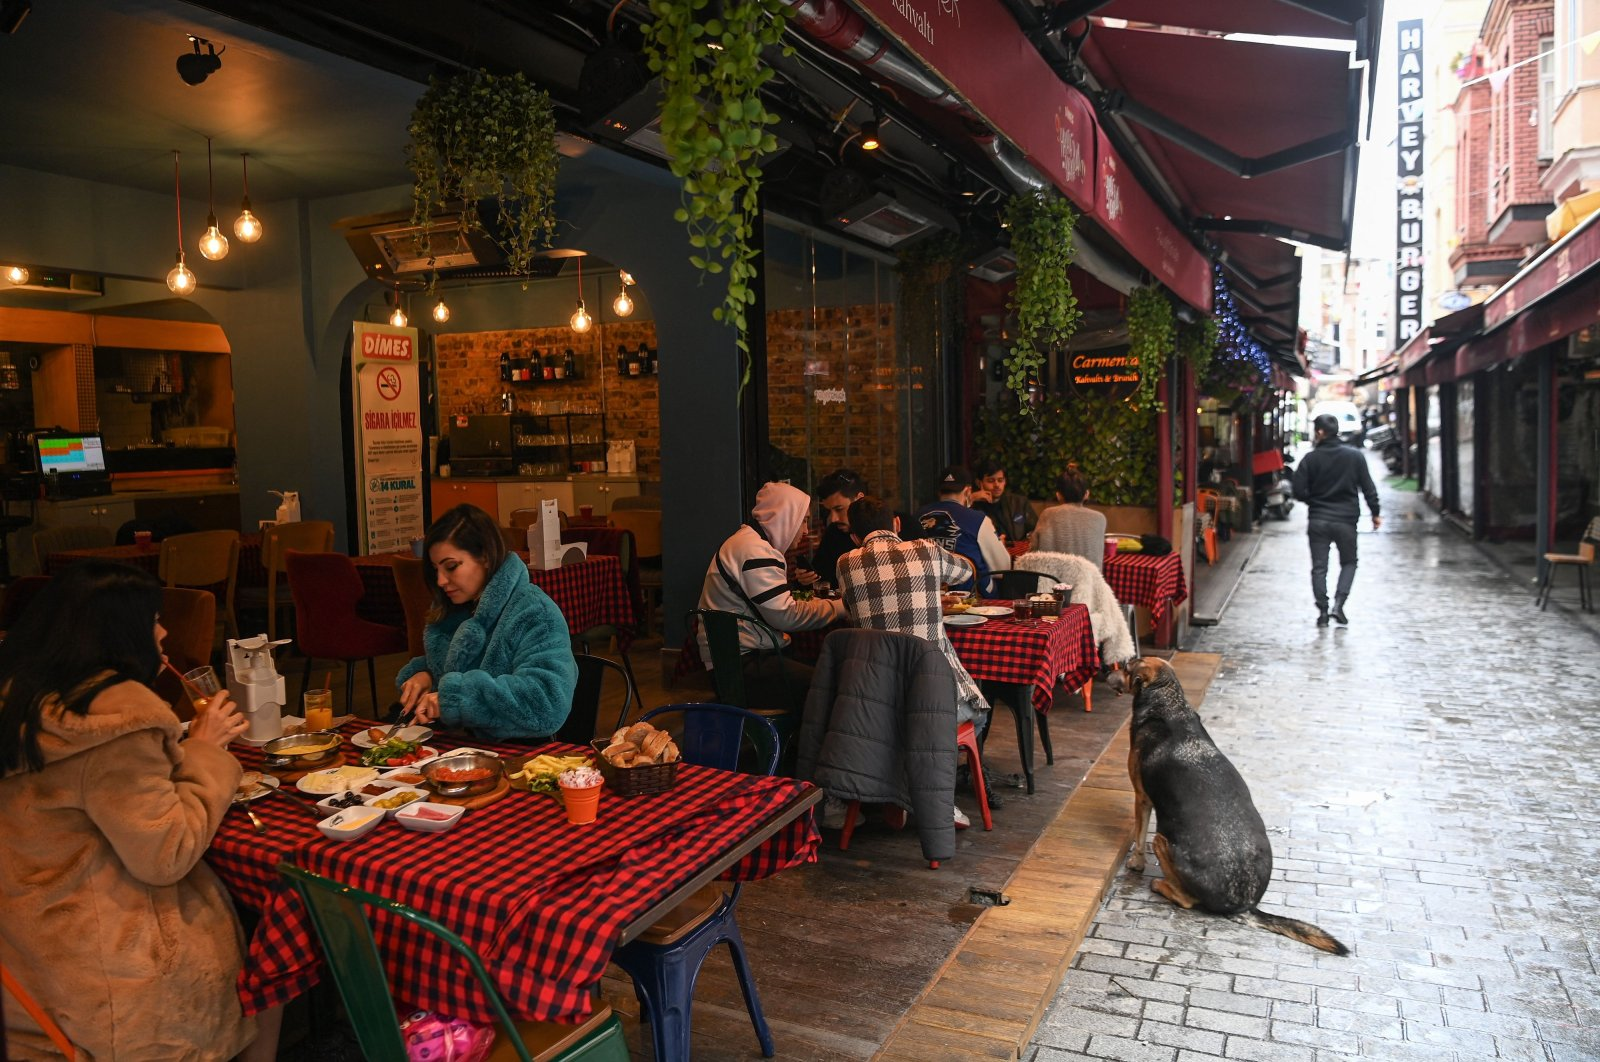 Customers eat at a restaurant in the Beşiktaş district of Istanbul, Turkey, March 2, 2021. (AFP Photo)